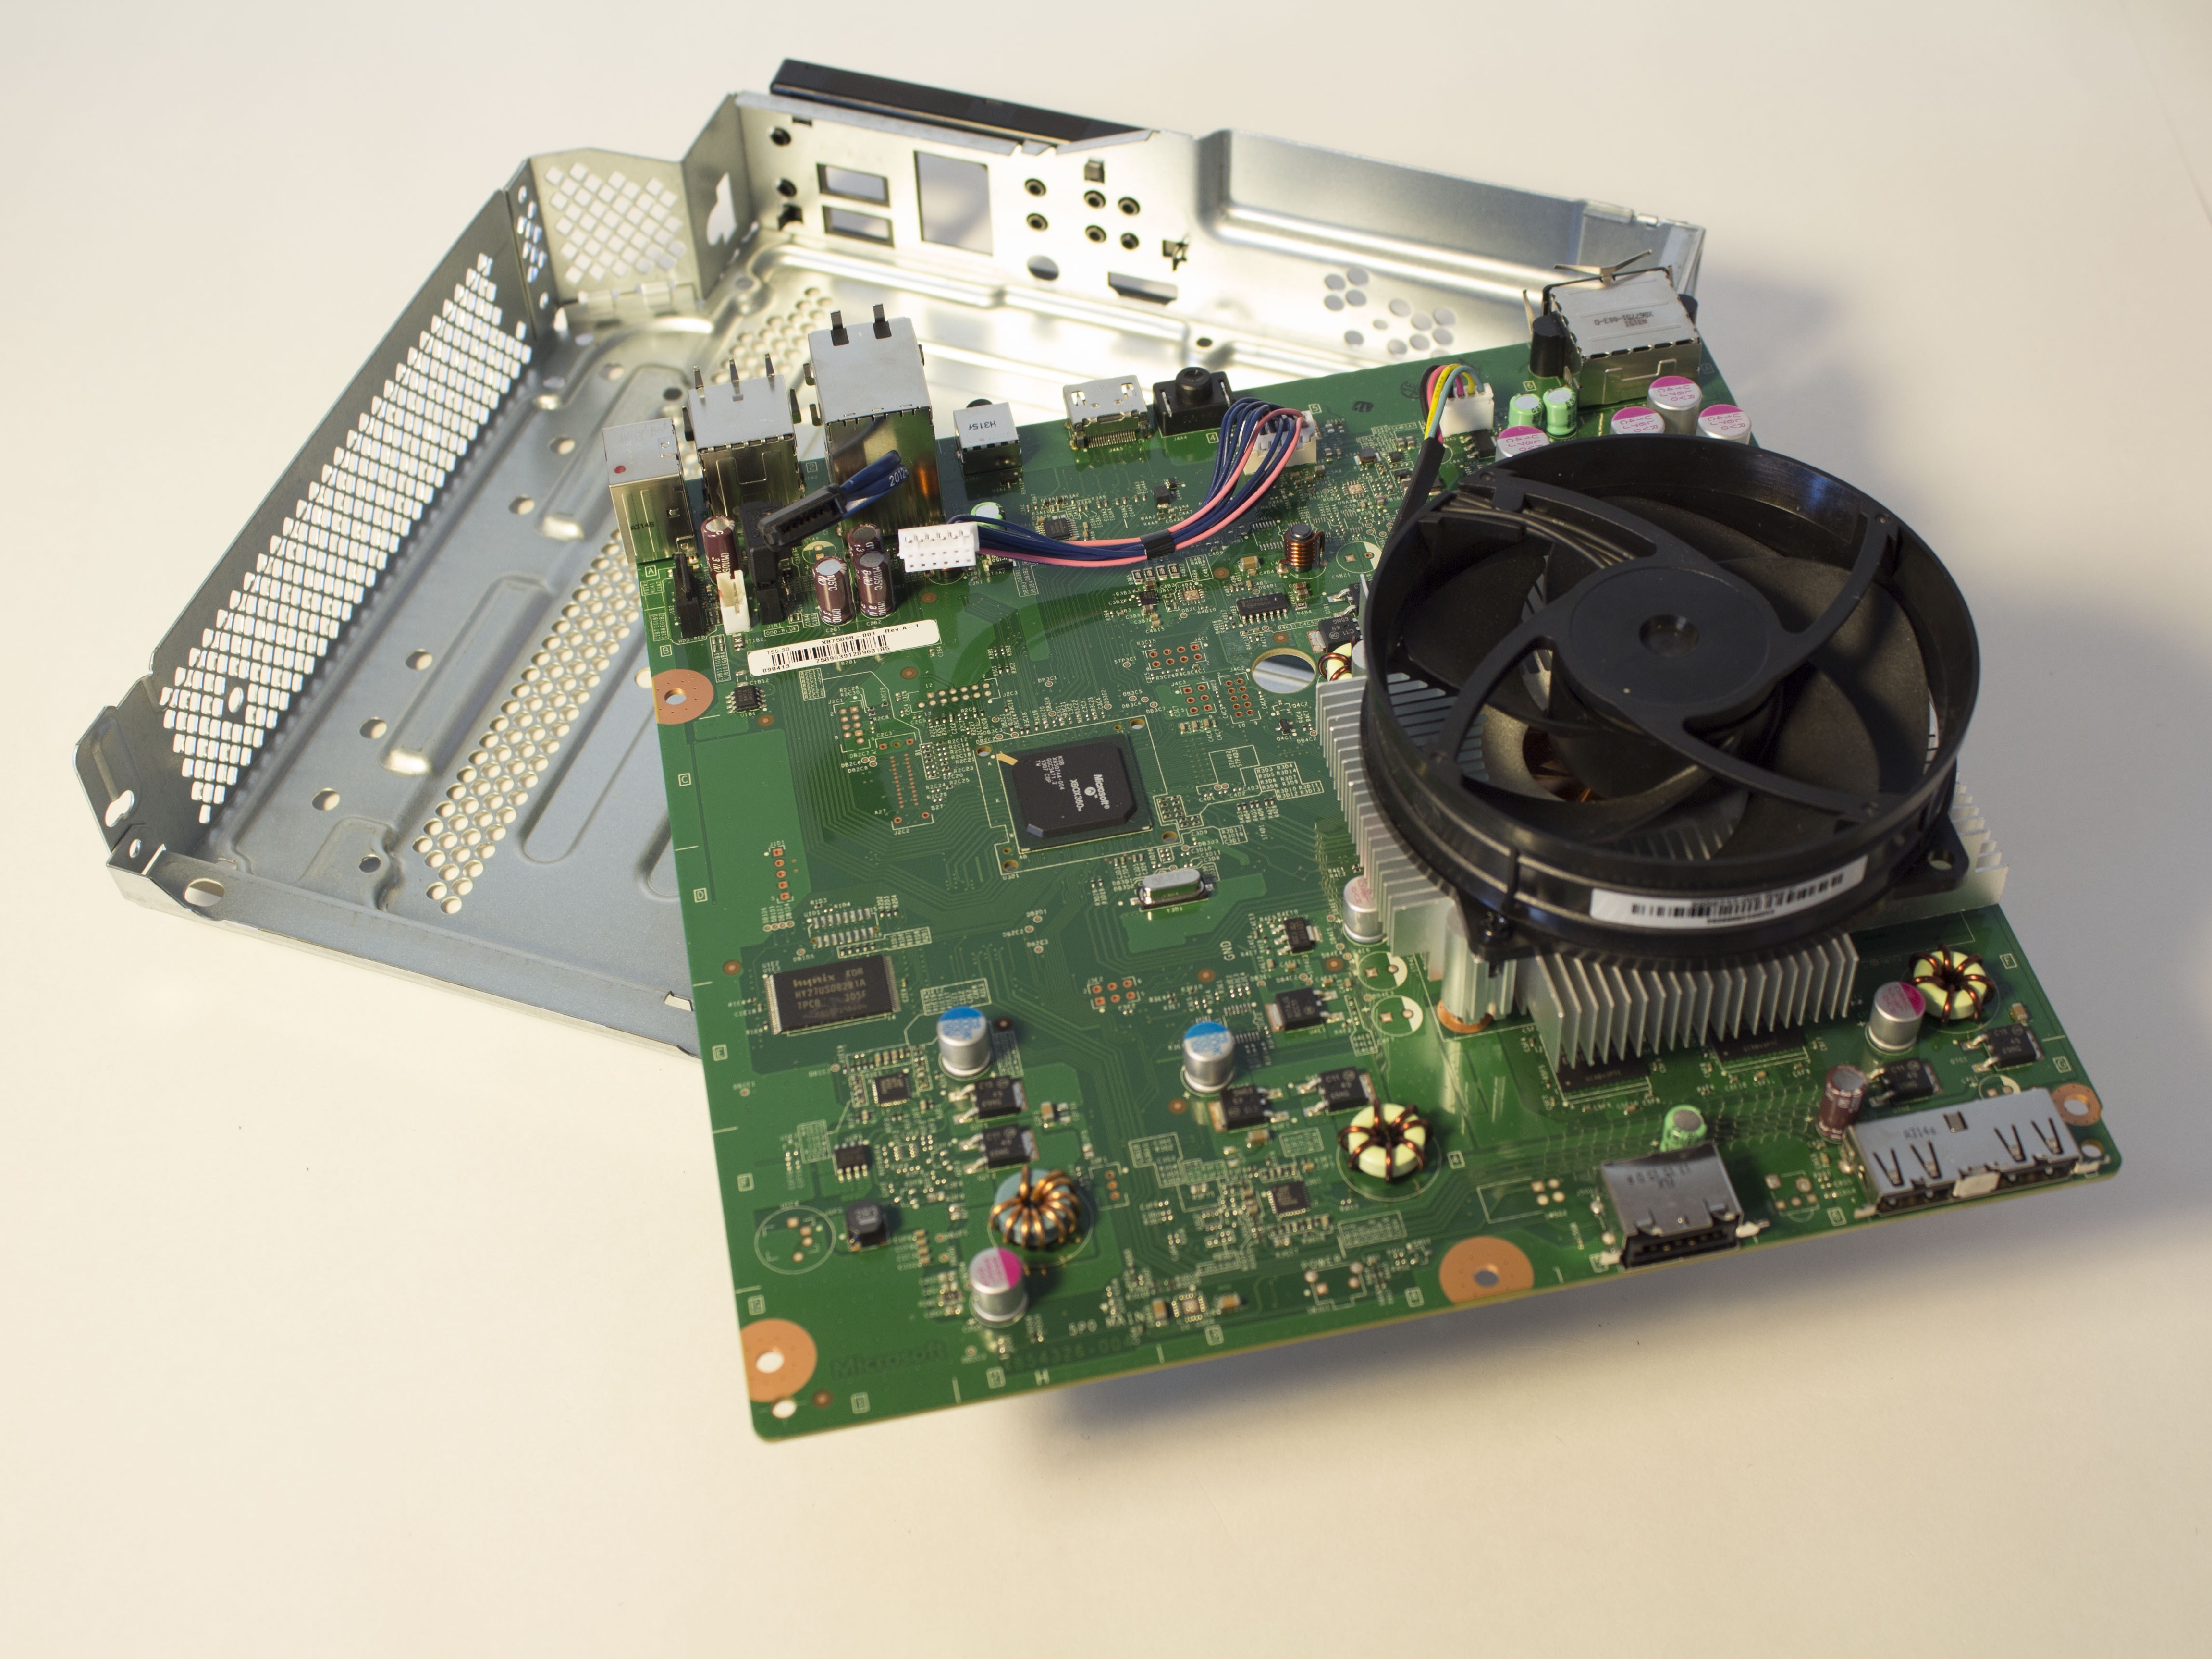 Xbox 360 hard drive (internal) replacement ifixit repair guide.